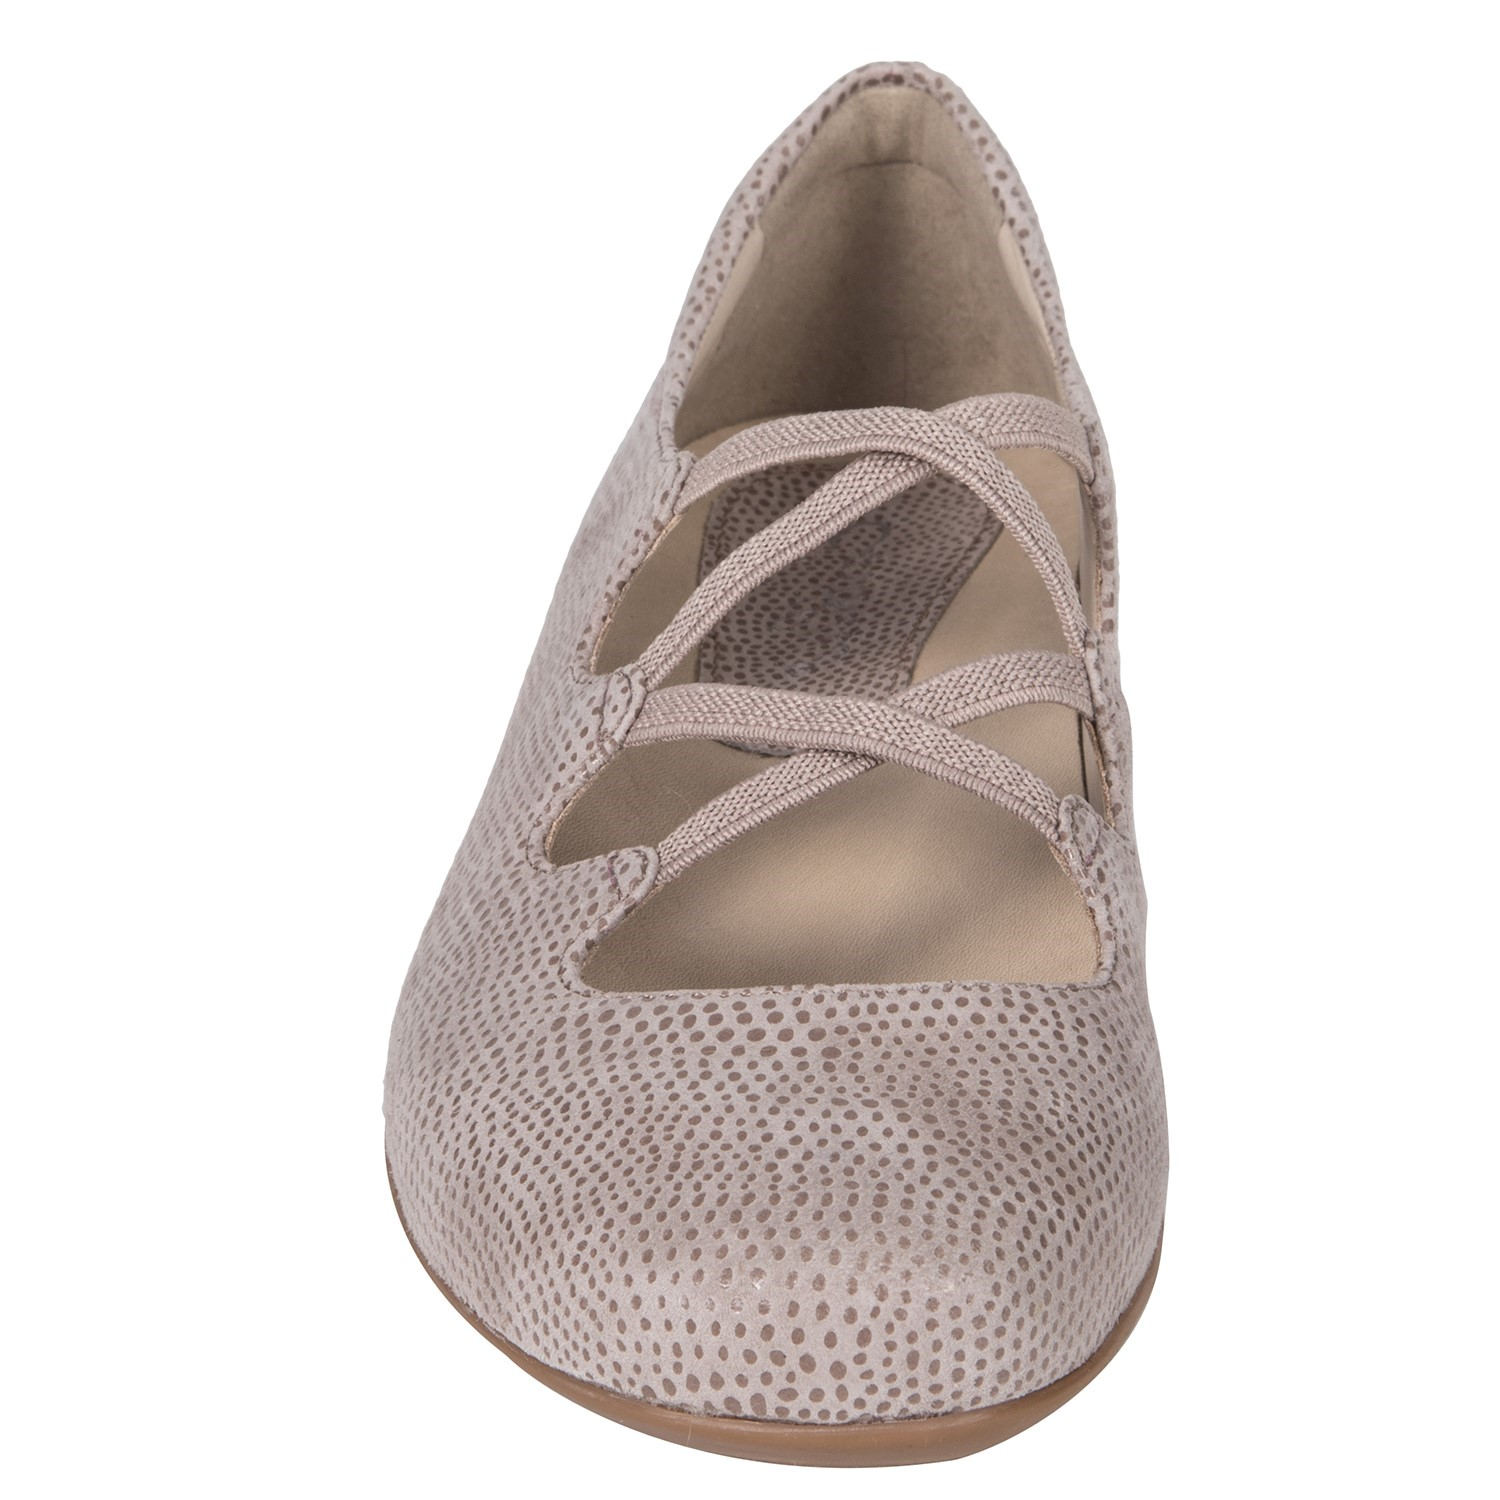 06e80489457 Earthies Clare - Women s Ballet Flat - Ginger - front